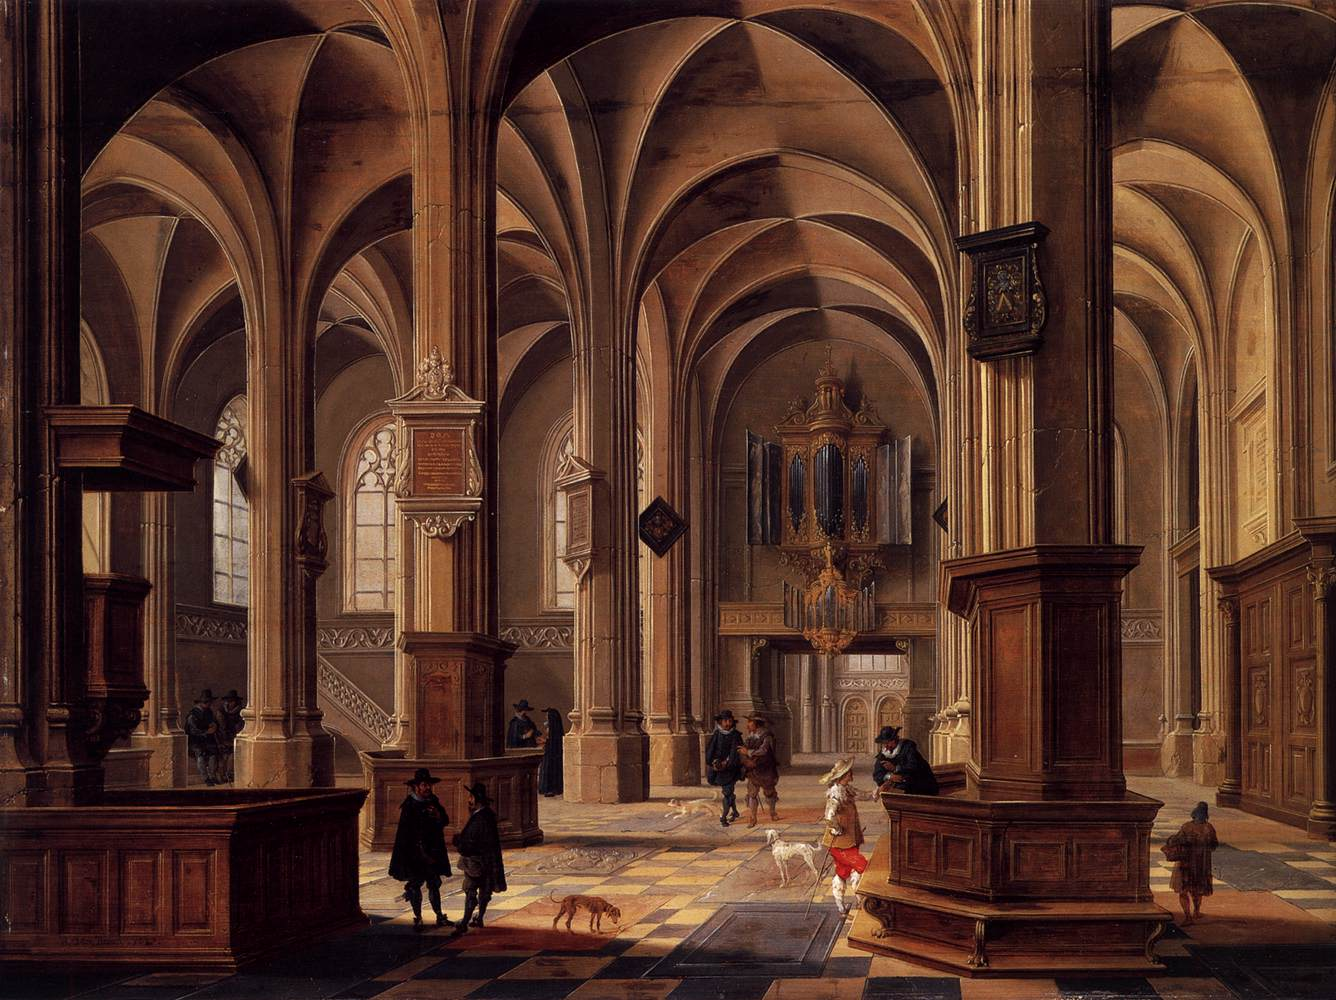 Interior of the Cunerakerk, Rhenen